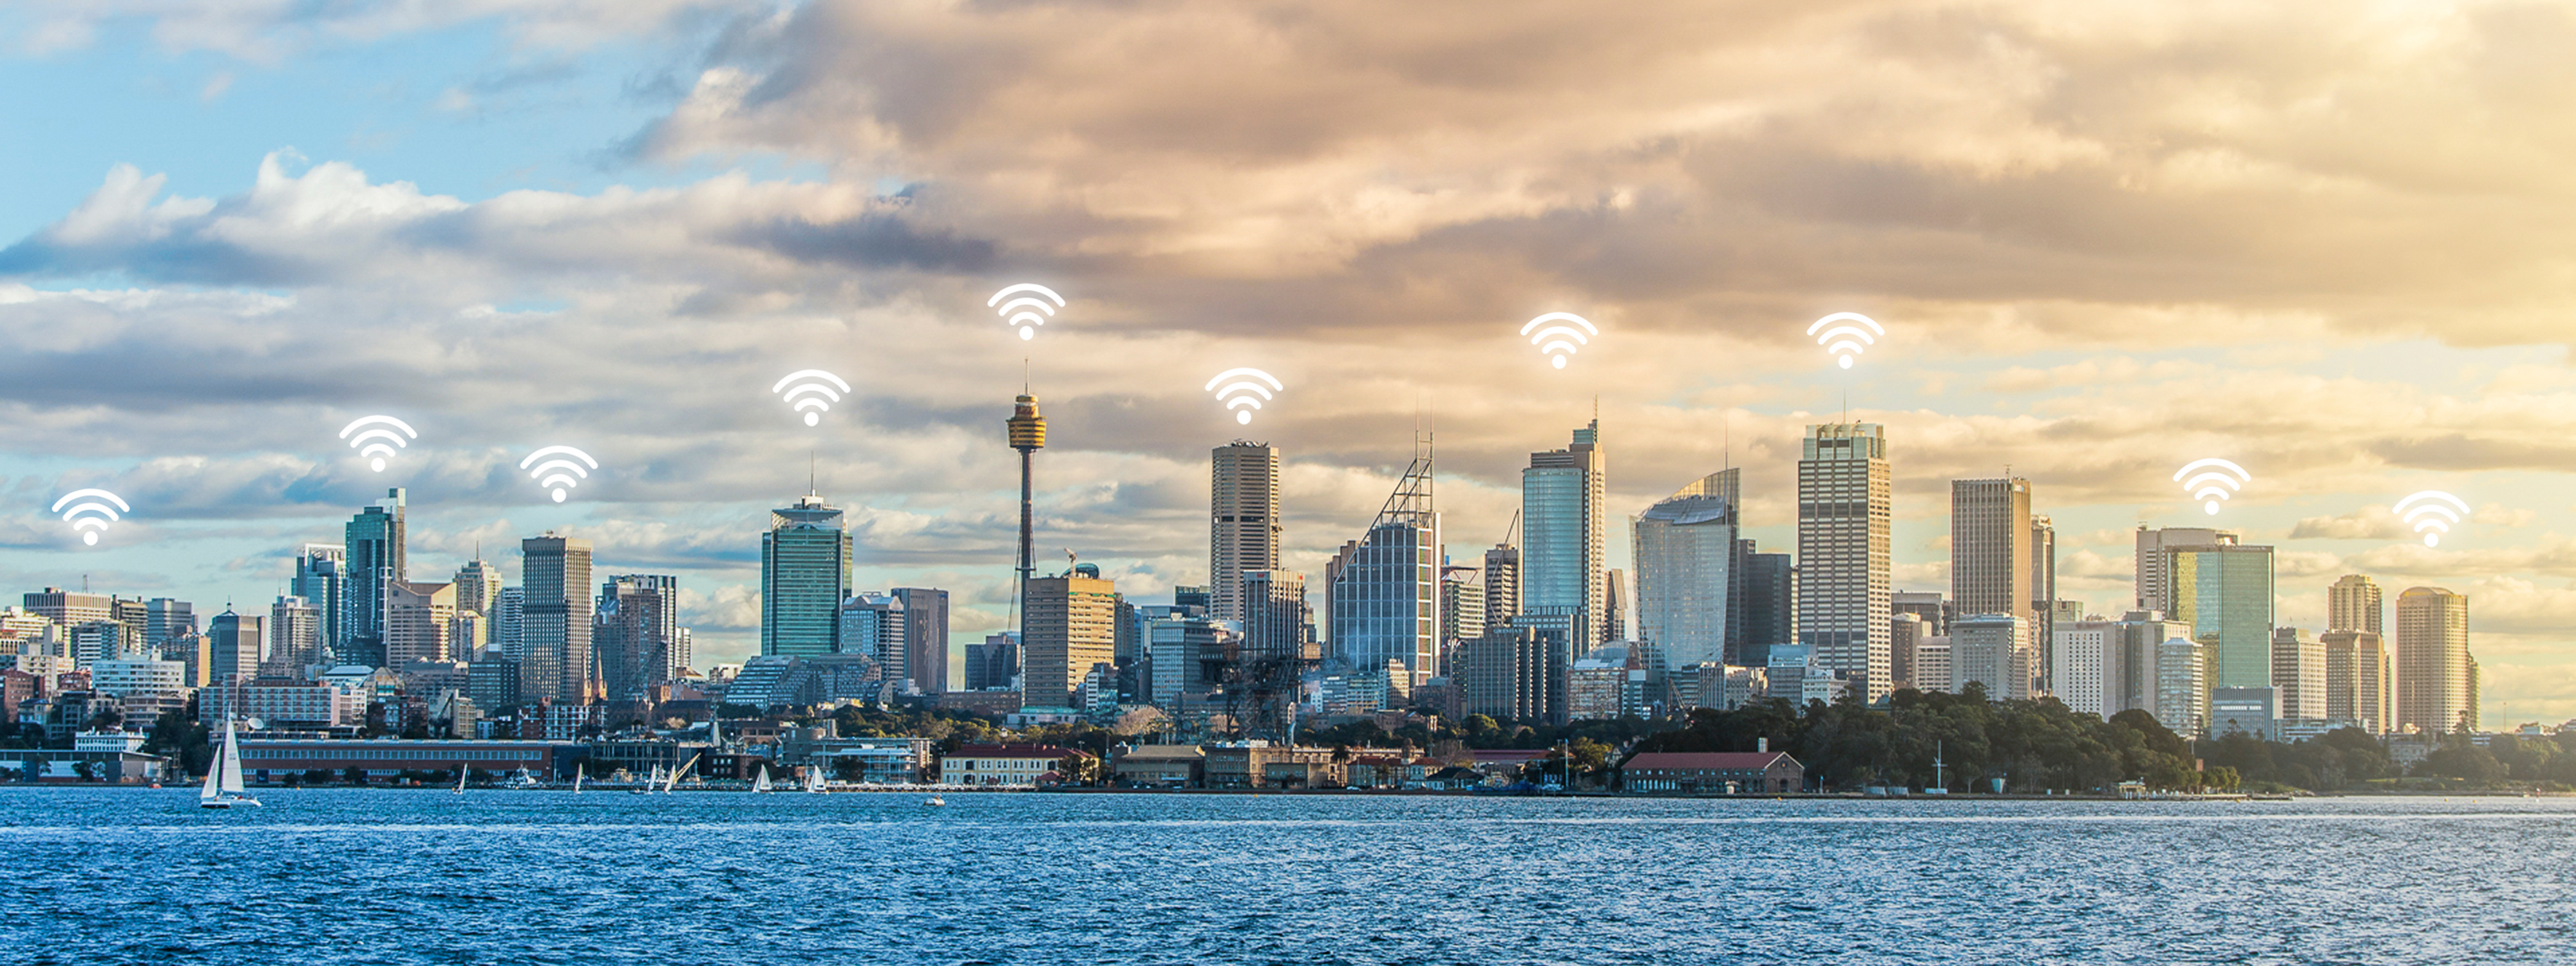 Wifi symbols above the Sydney skyline over the harbour at dusk